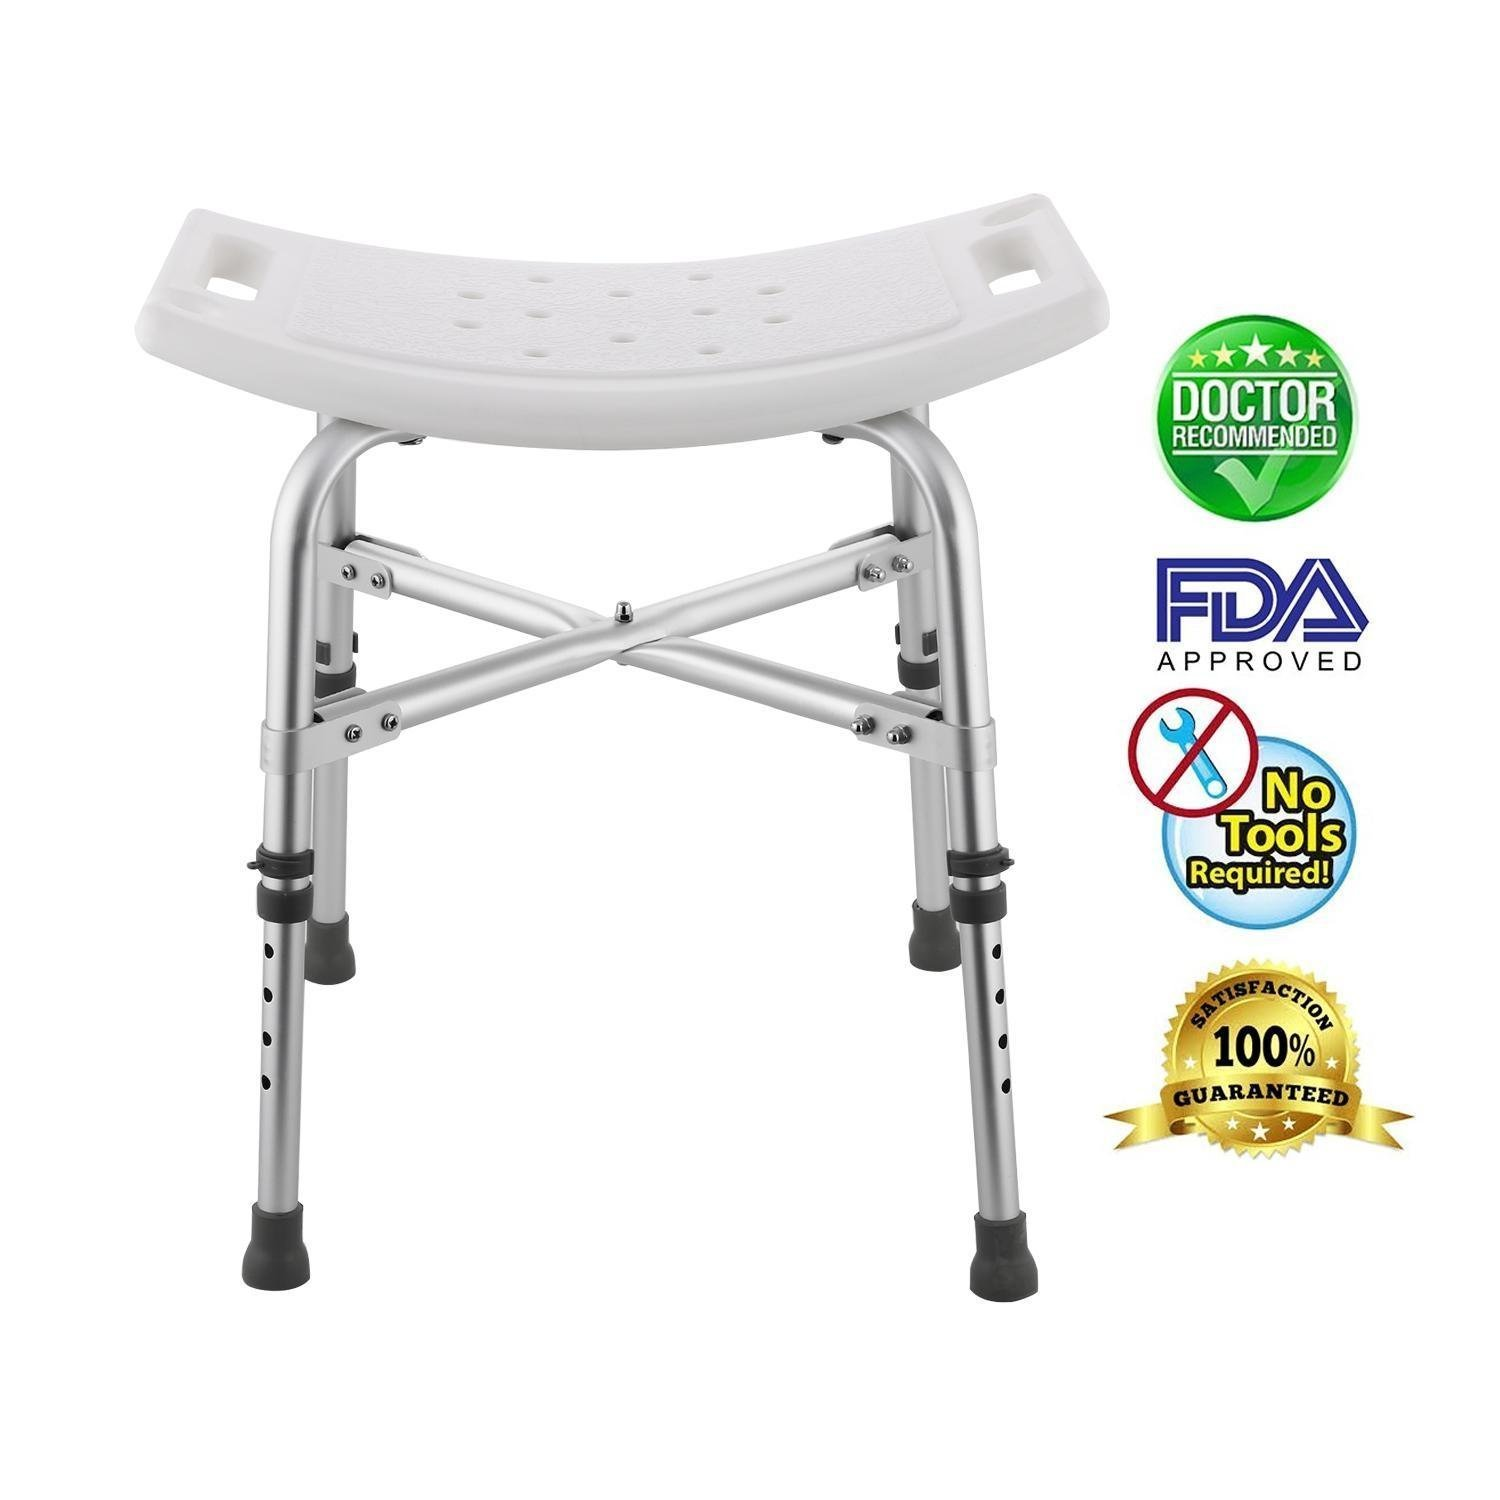 Leoneva Spa Bathtub Adjustable Height Bath and Shower Seat Top Rated Shower Bench, Lightweight Bath Seat for Handicap, Disabled, Bathroom, Toilet (Adjustable 16.4-21.1inch) by Leoneva